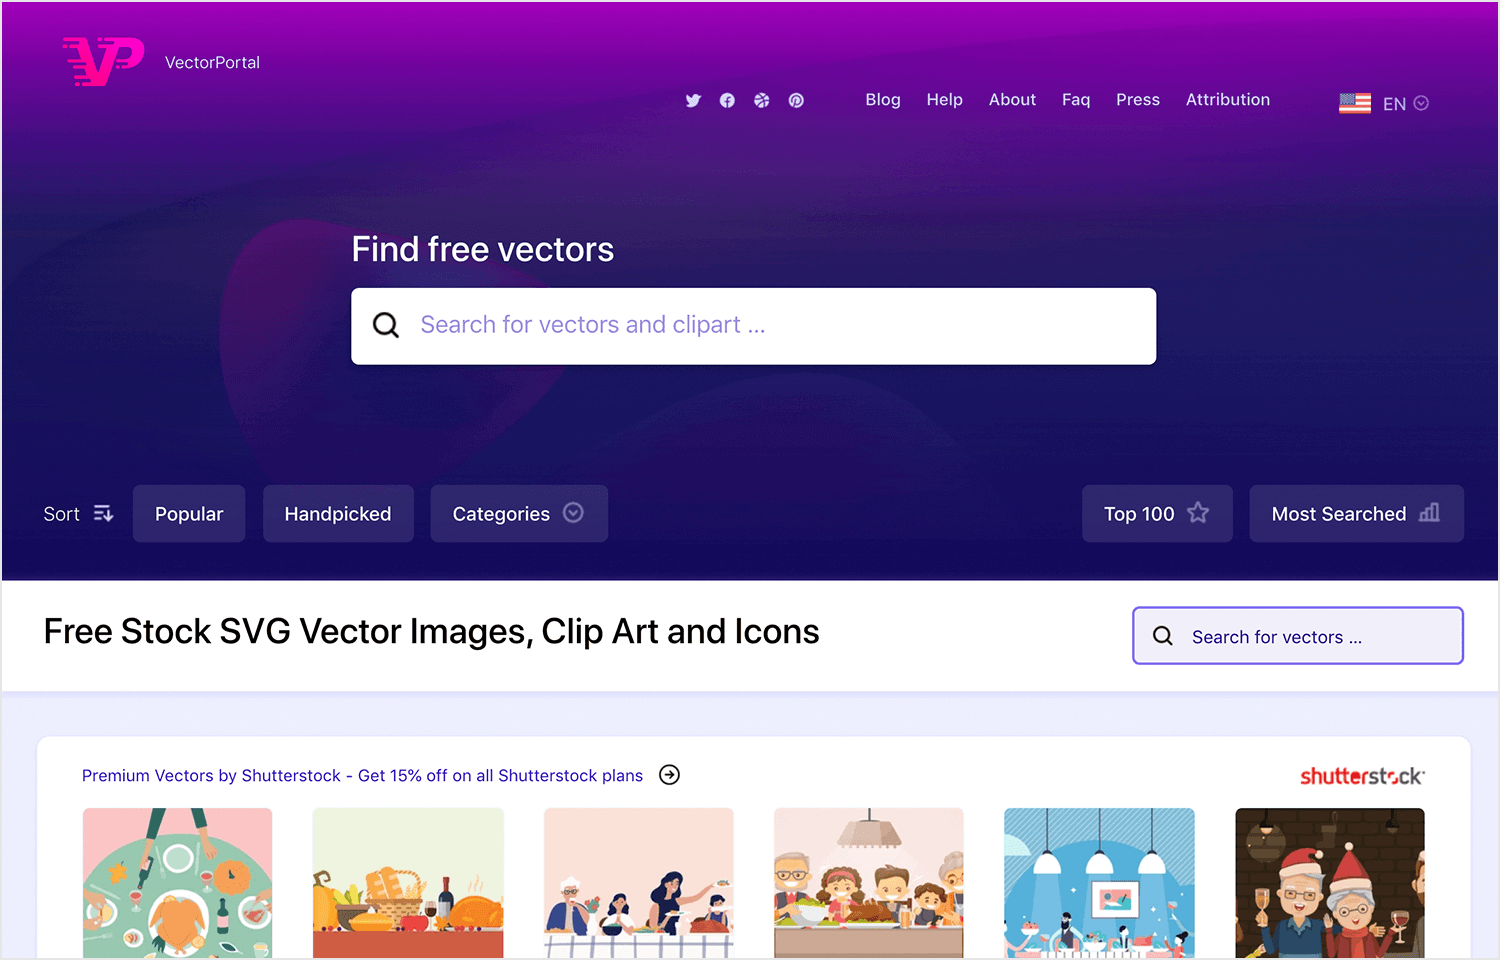 vector portal as place for free images and illustrations